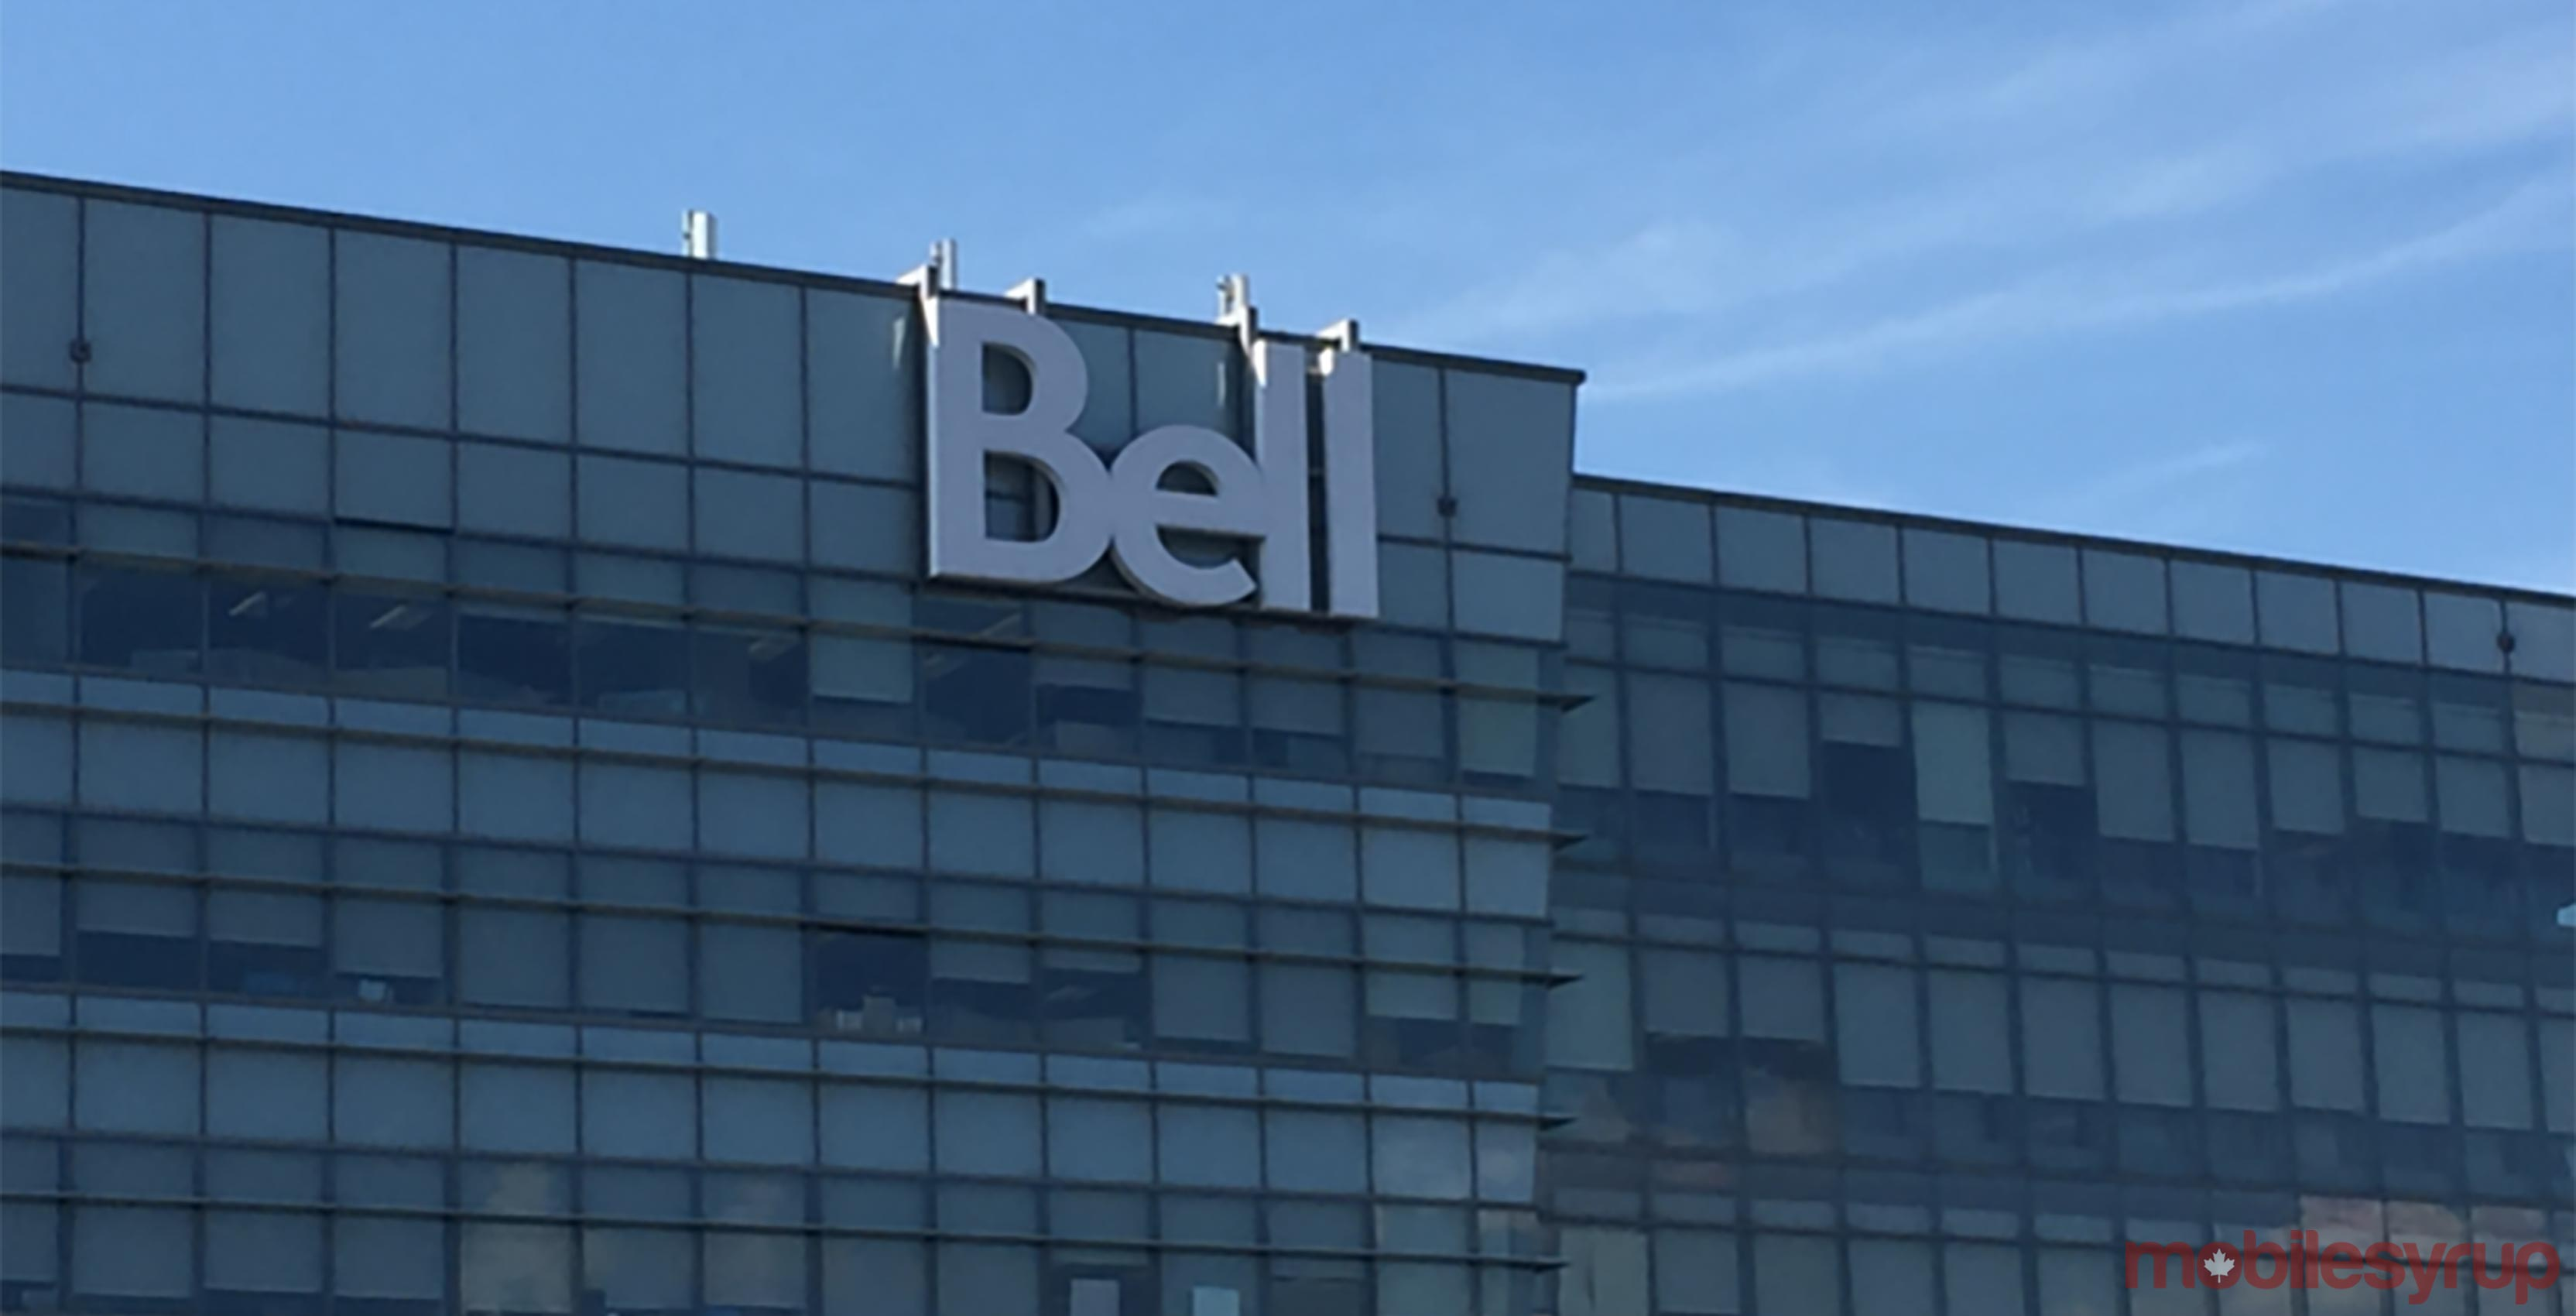 Bell logo on building